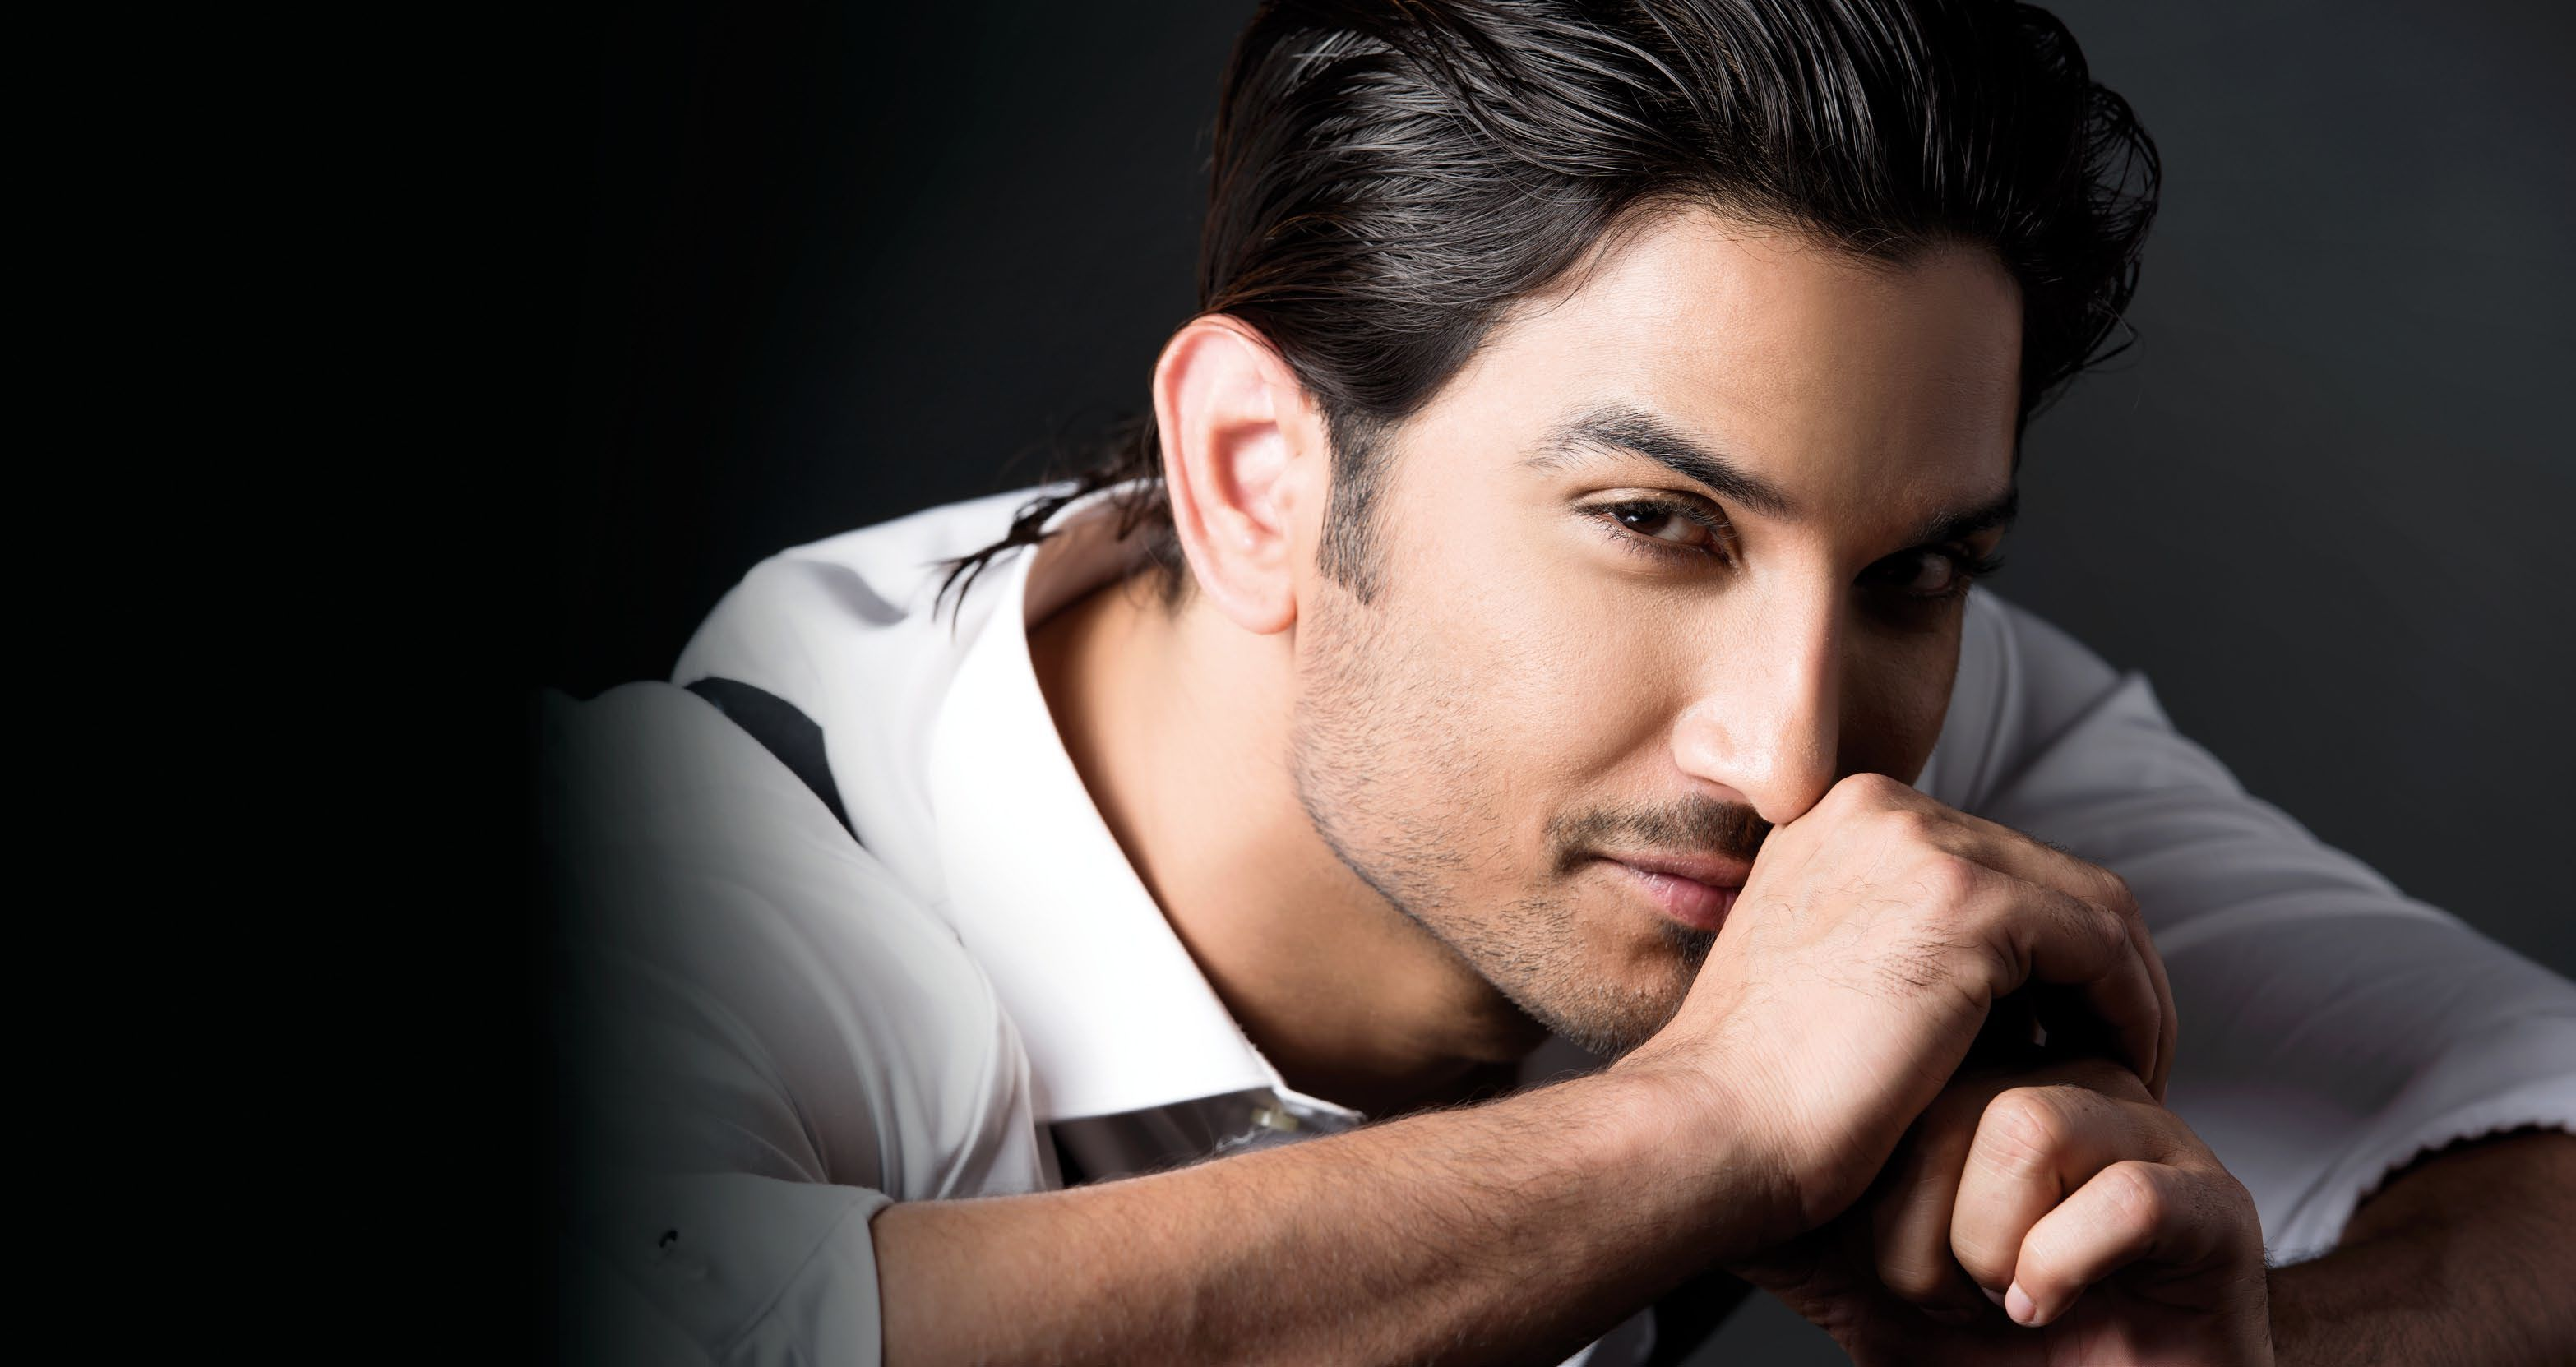 Bollywood: Remembering Sushant Singh Rajput on His First Death Anniversary